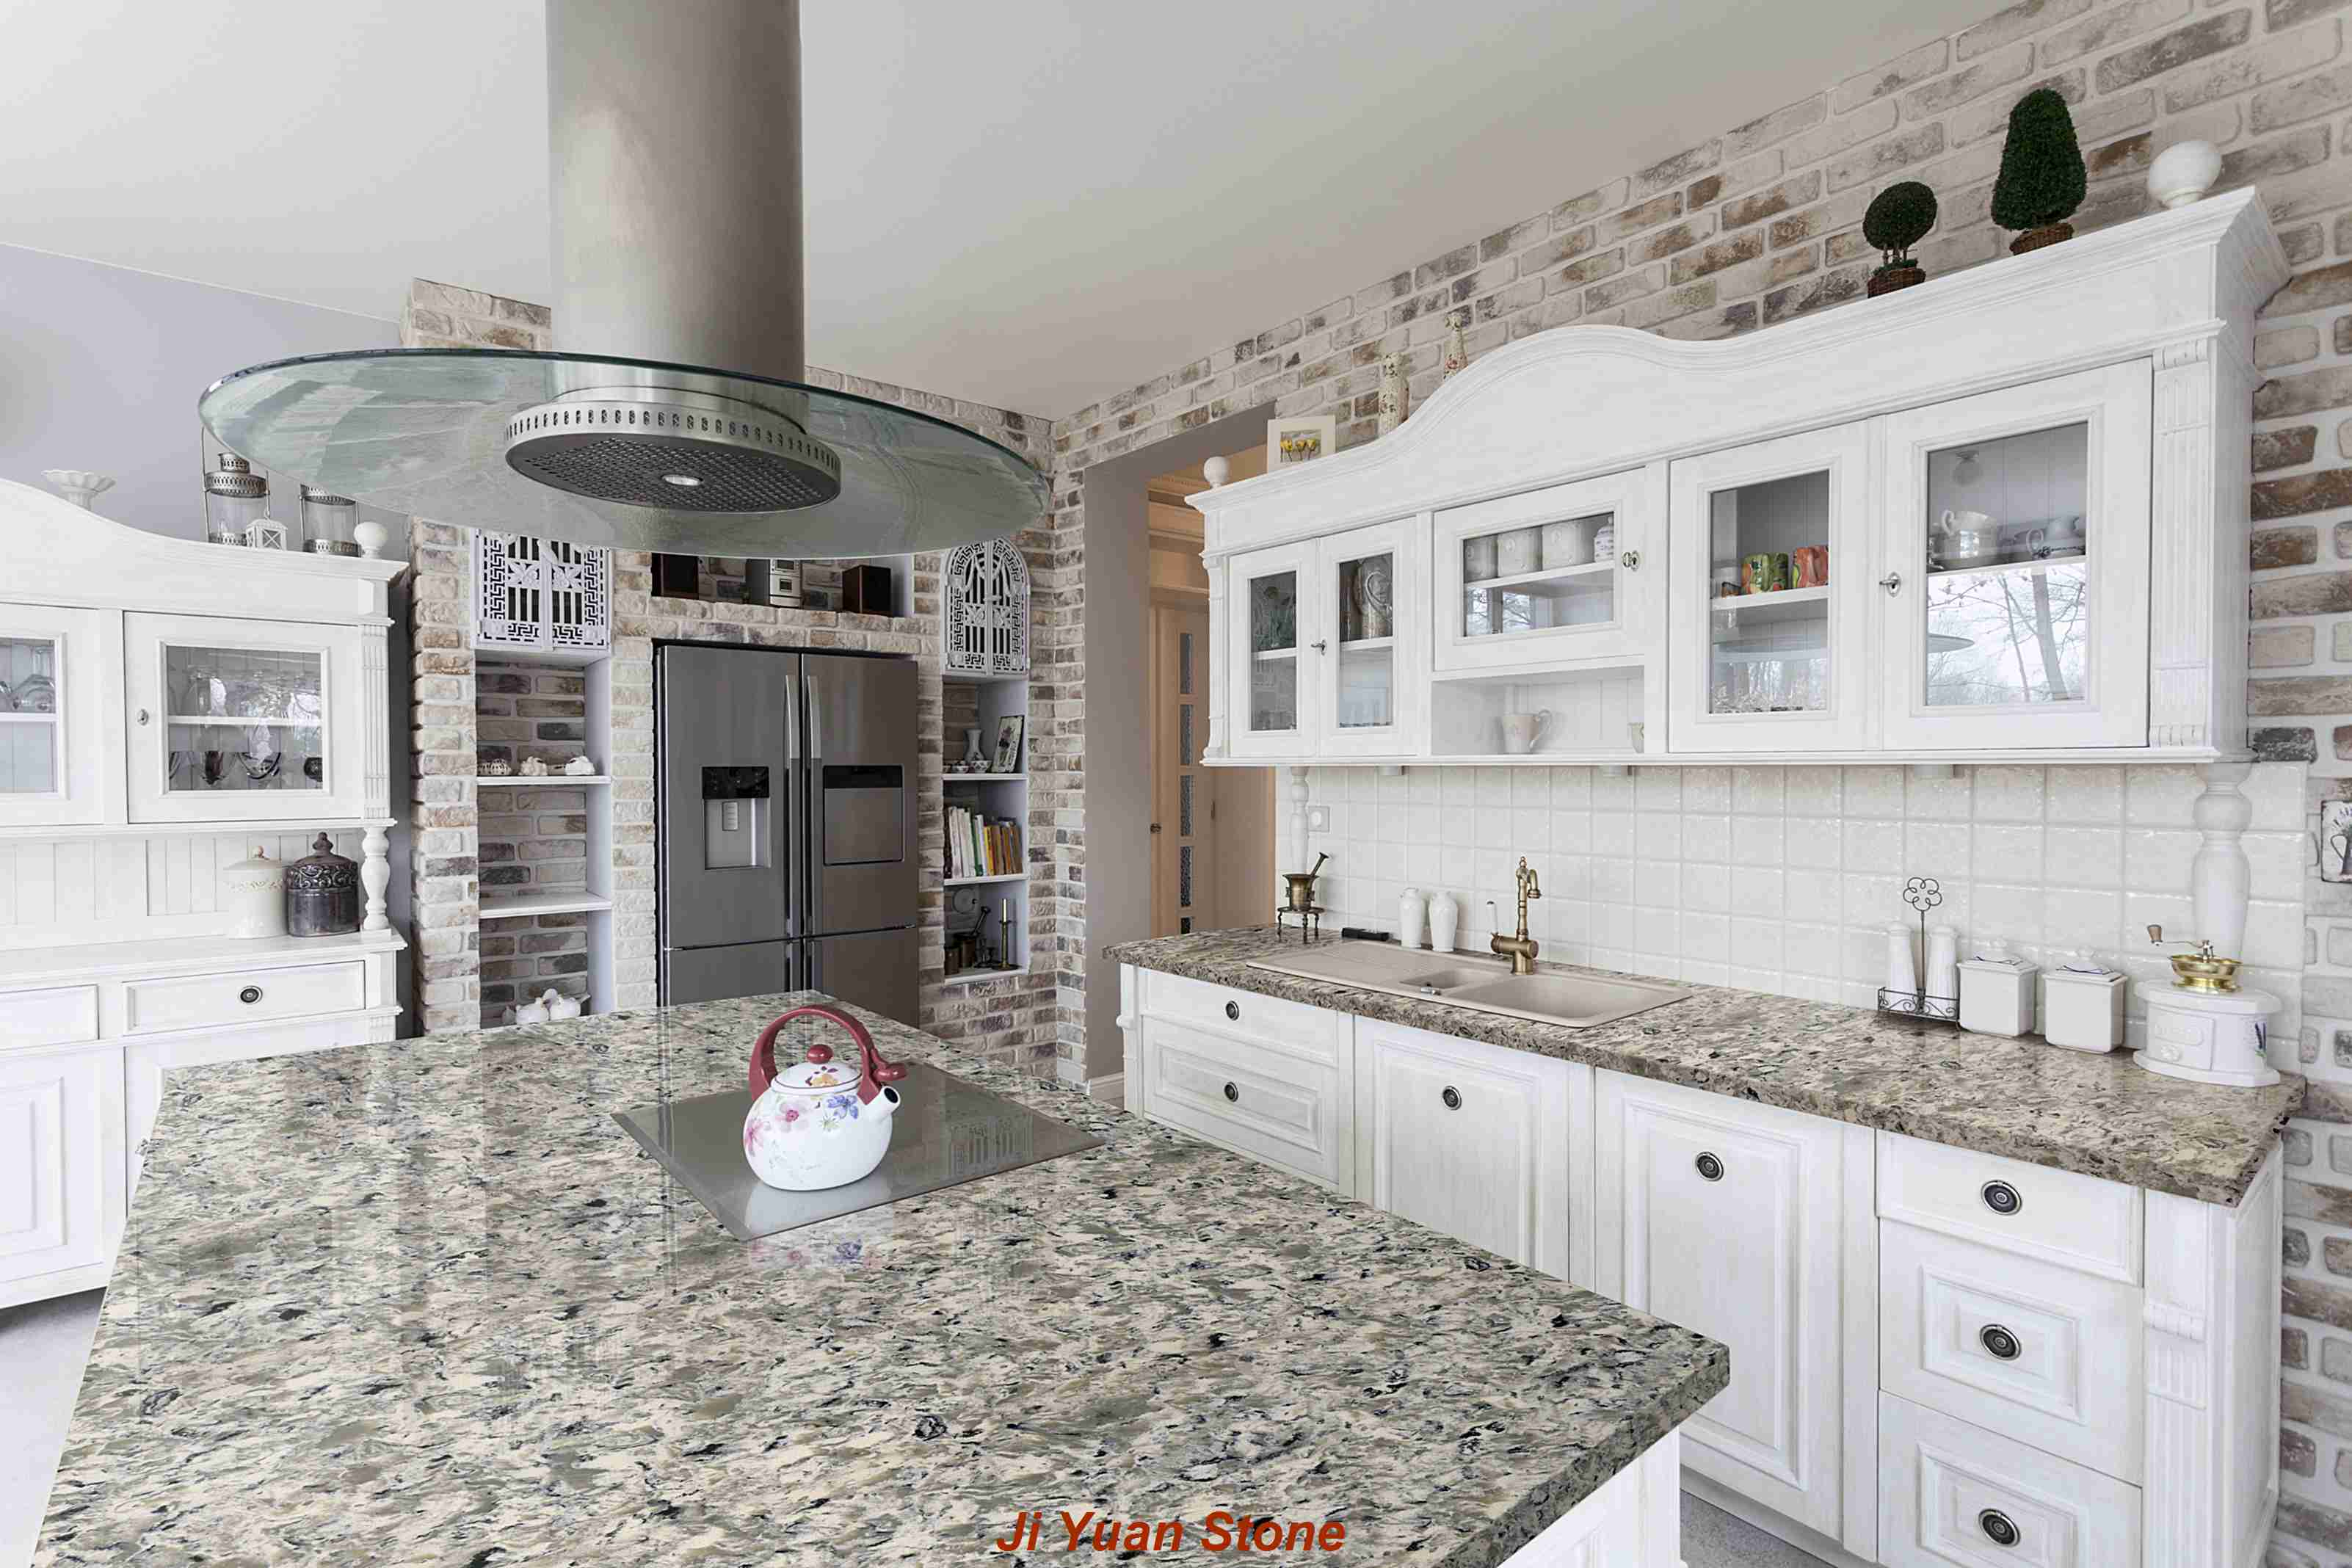 silestone quartz countertops pink quartz countertops,quartz granite quartz formation different quartz,images of quartz countertops smoky amethyst quartz